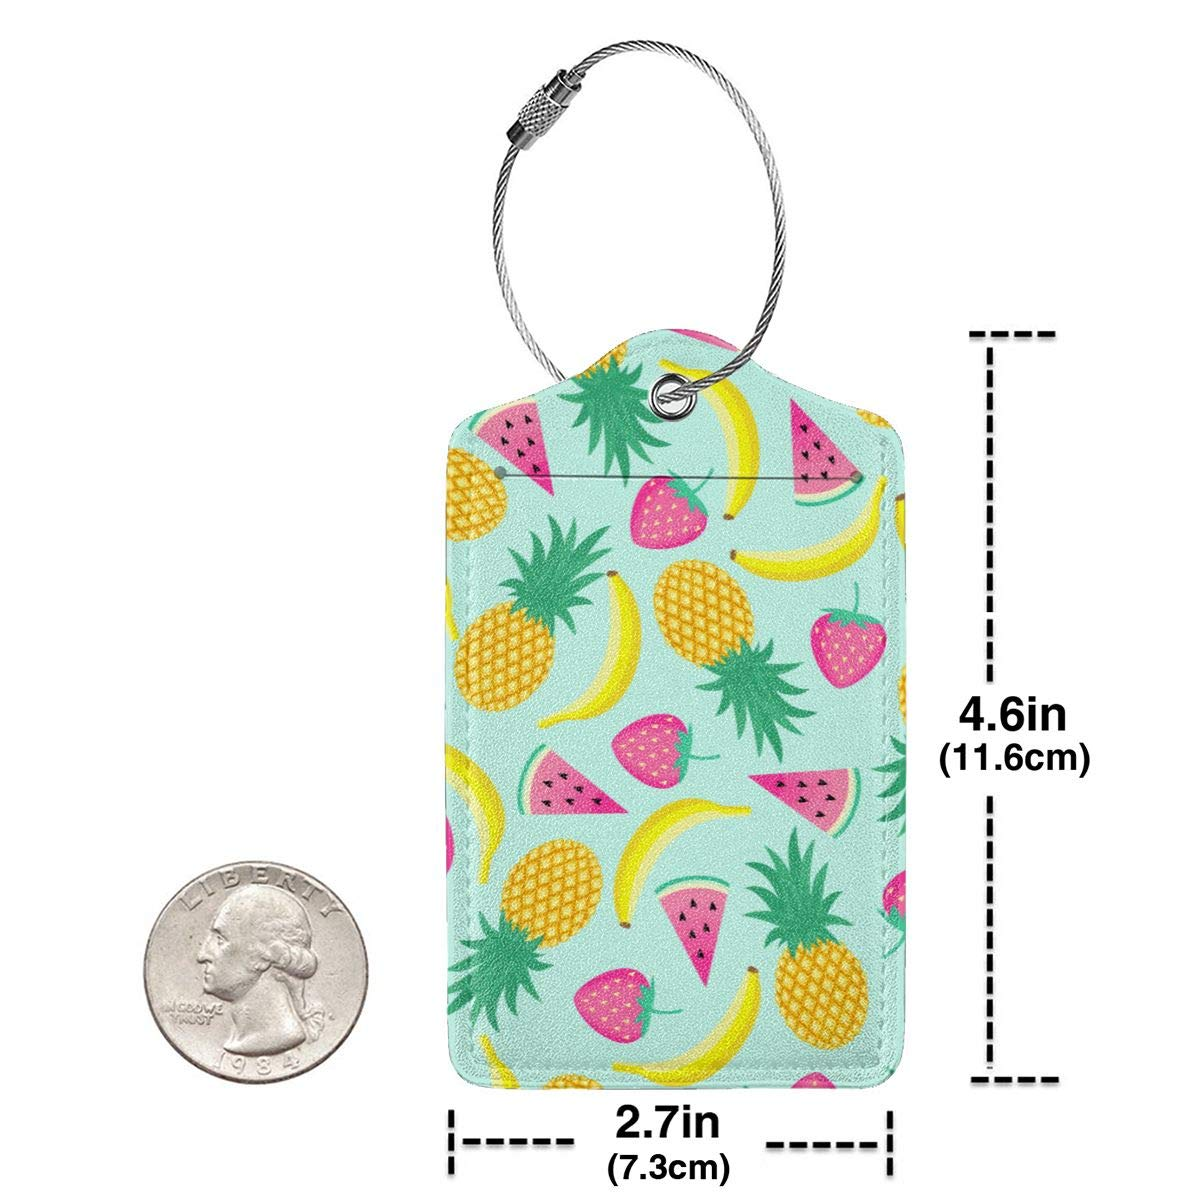 Fruit Mix Travel Luggage Tags With Full Privacy Cover Leather Case And Stainless Steel Loop